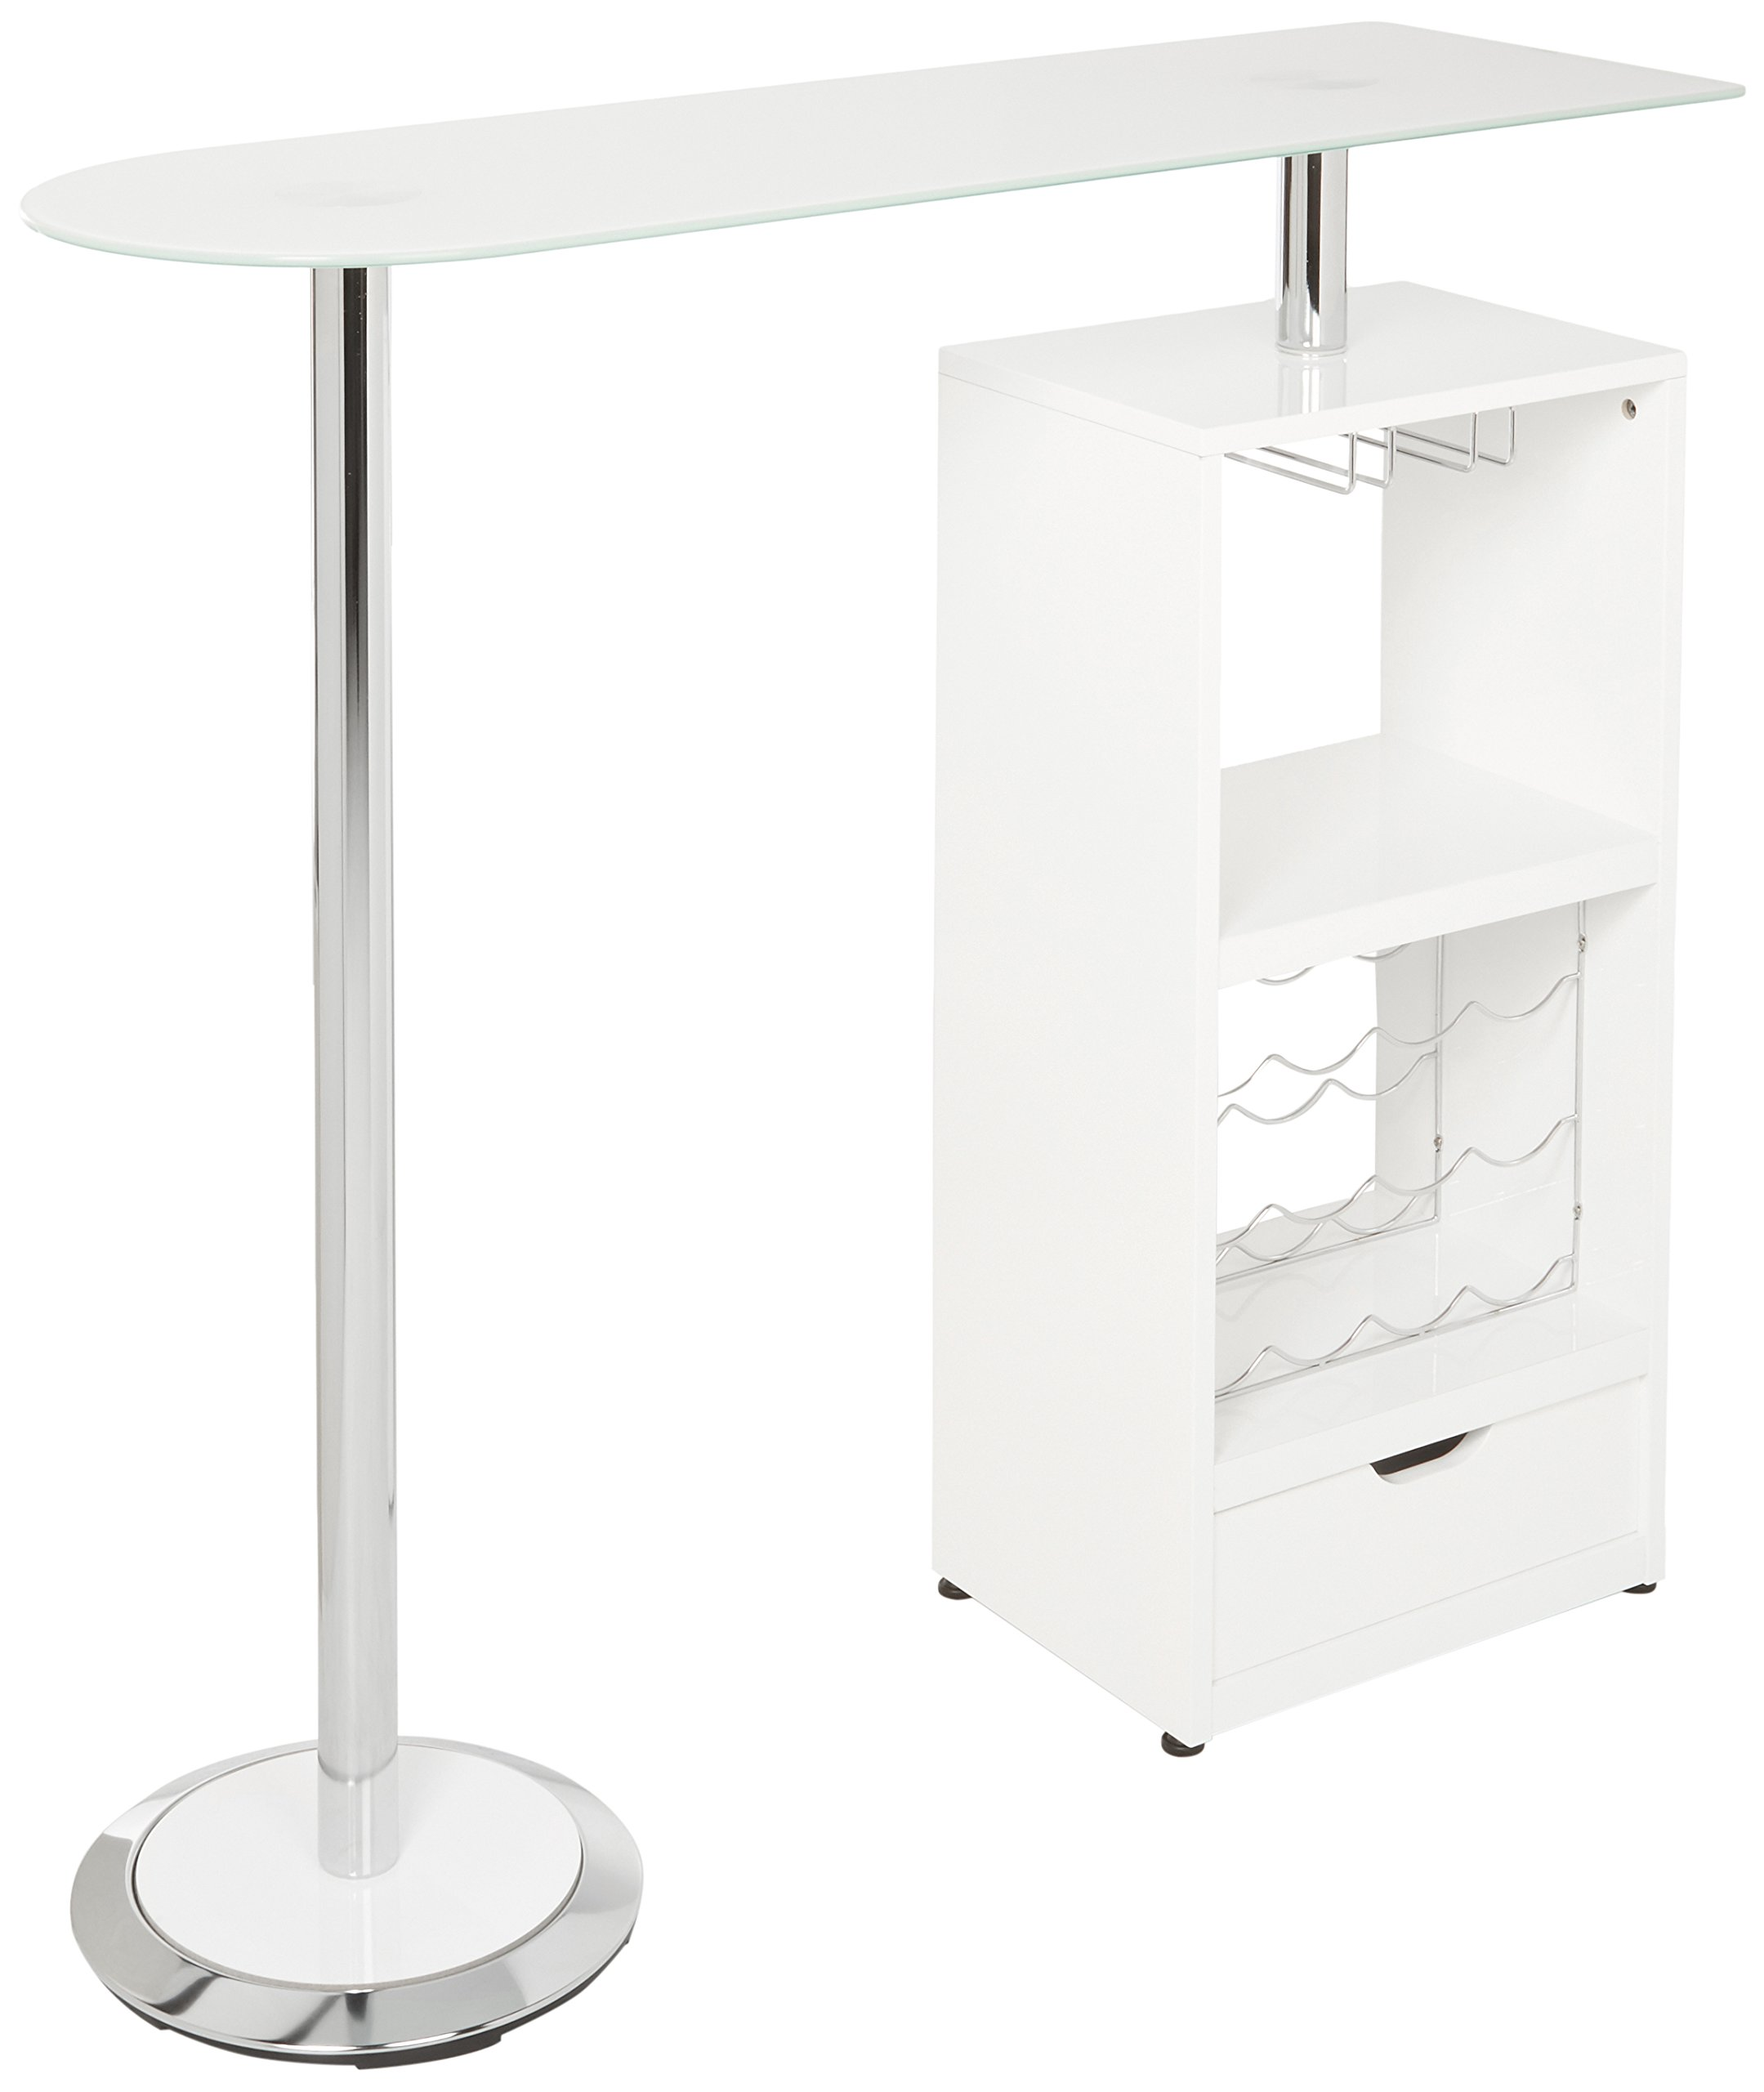 Glass Top Bar Table Glossy White, Chrome and Clear by Coaster Home Furnishings